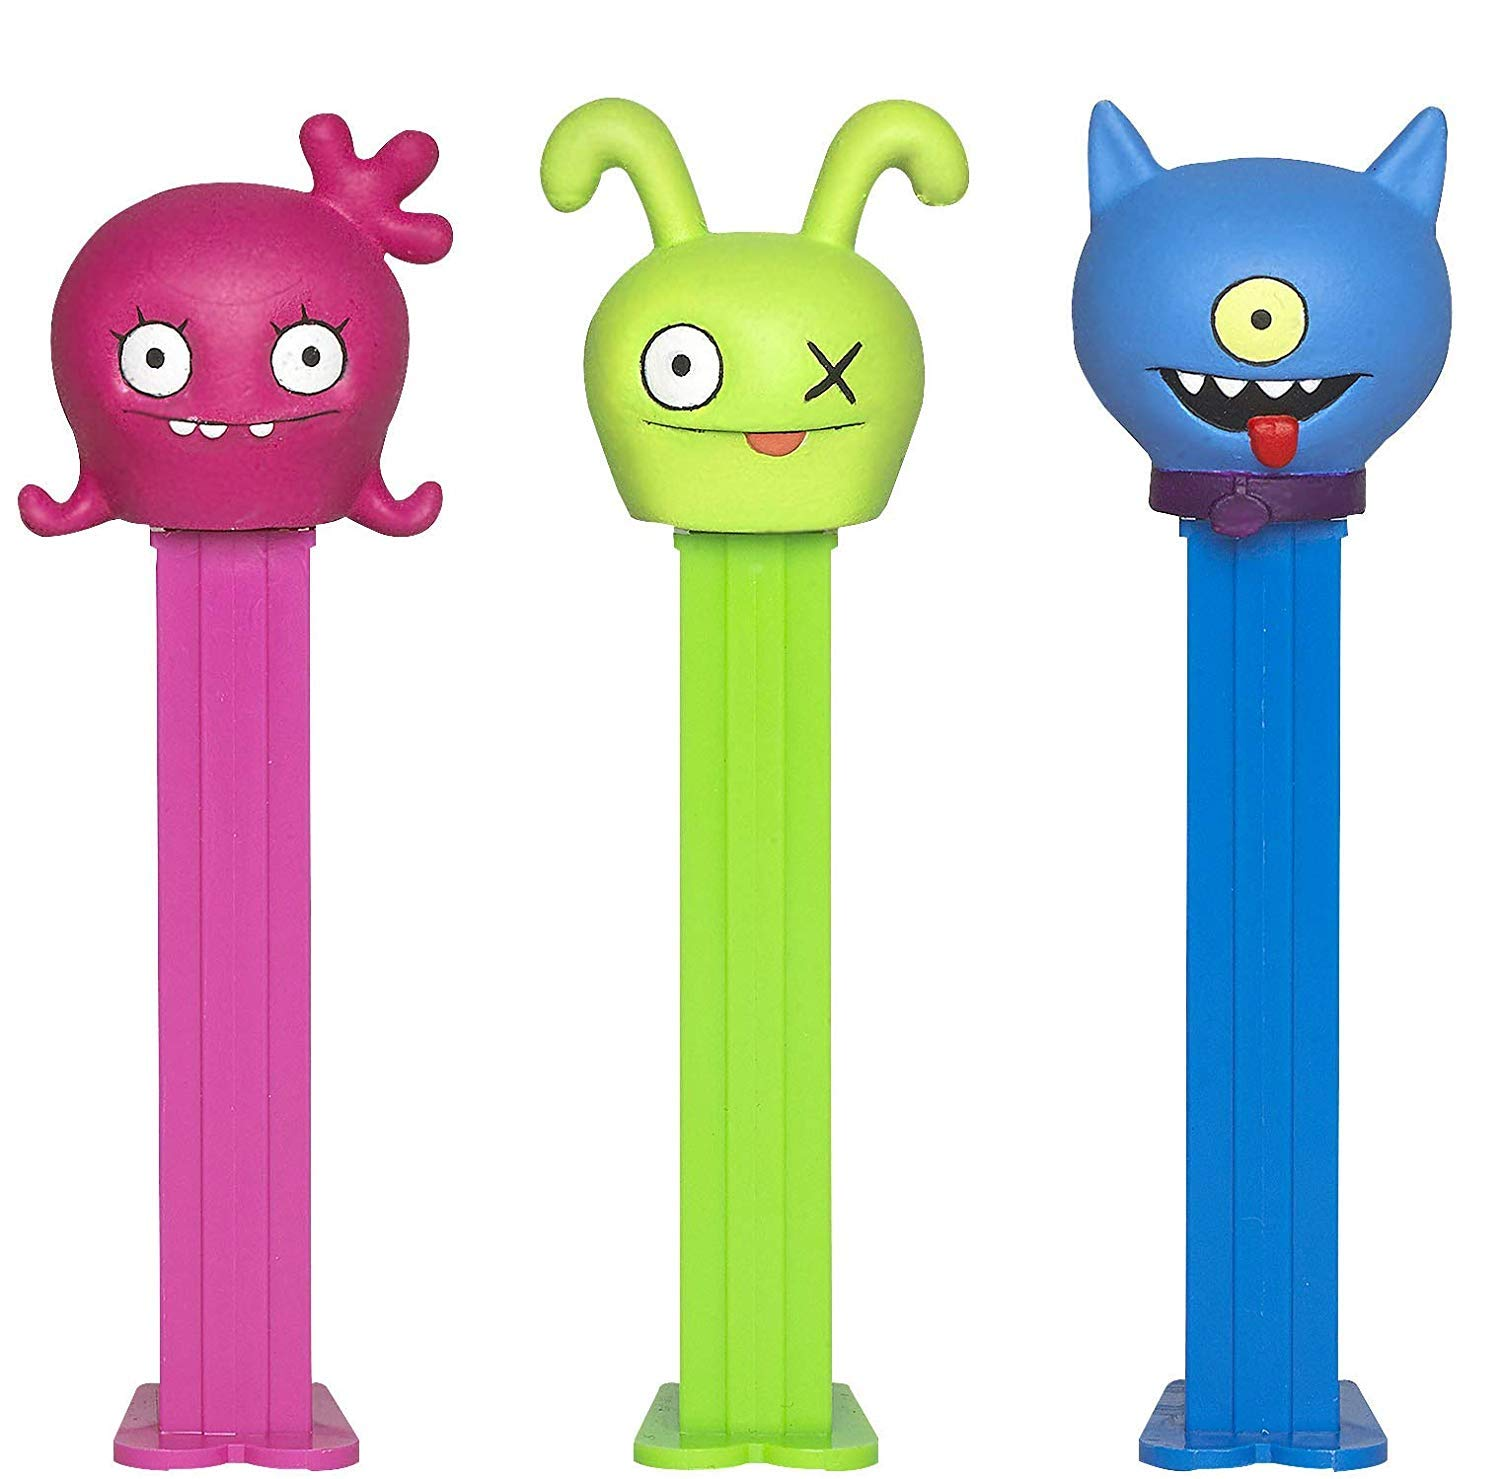 PEZ Ugly Dolls Series Choose Character and Condition from Pull Down Menu